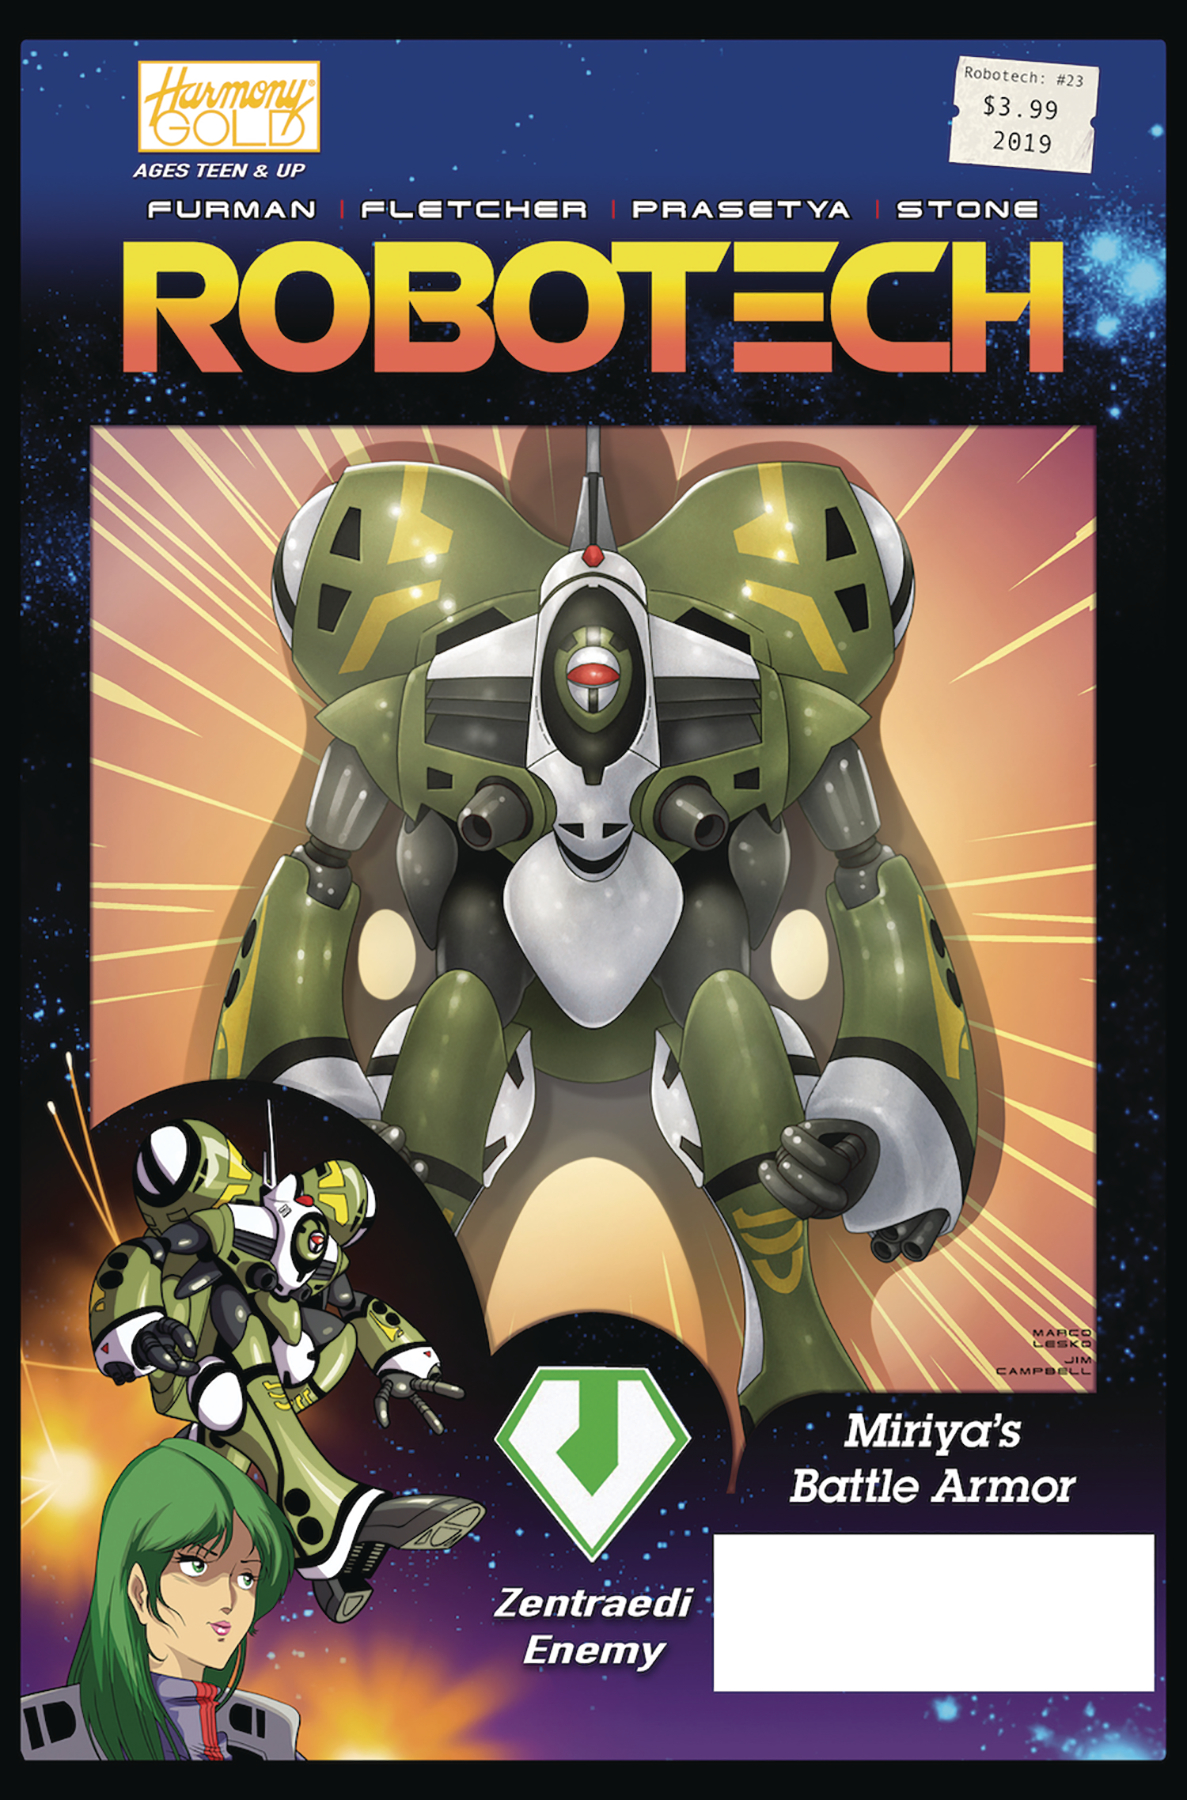 ROBOTECH #23 CVR B VEHICLE ACTION FIGURE VAR